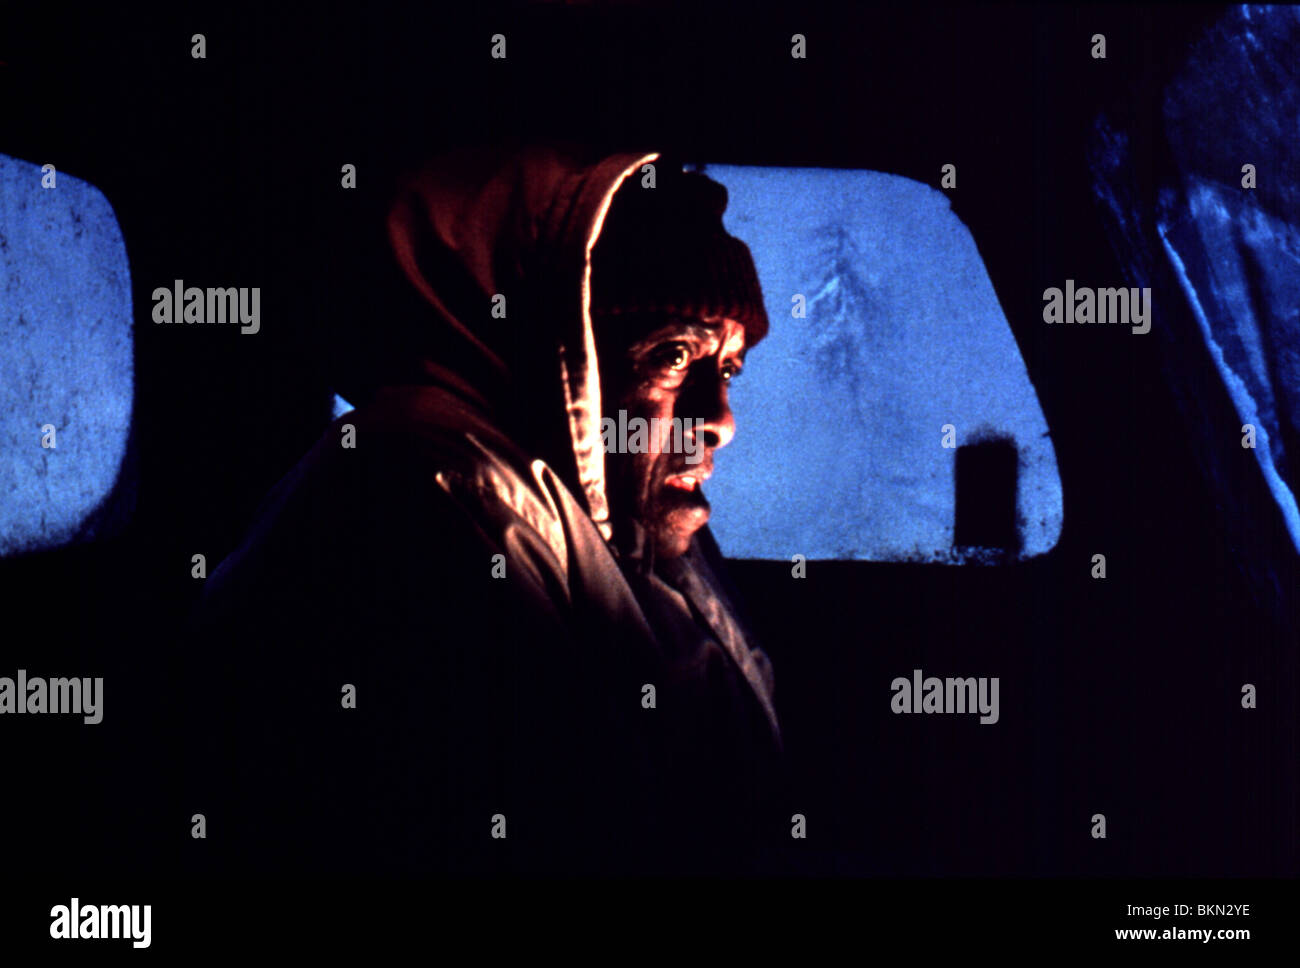 THE SHINING (1980) SCATMAN CROTHERS SHI 016 - Stock Image